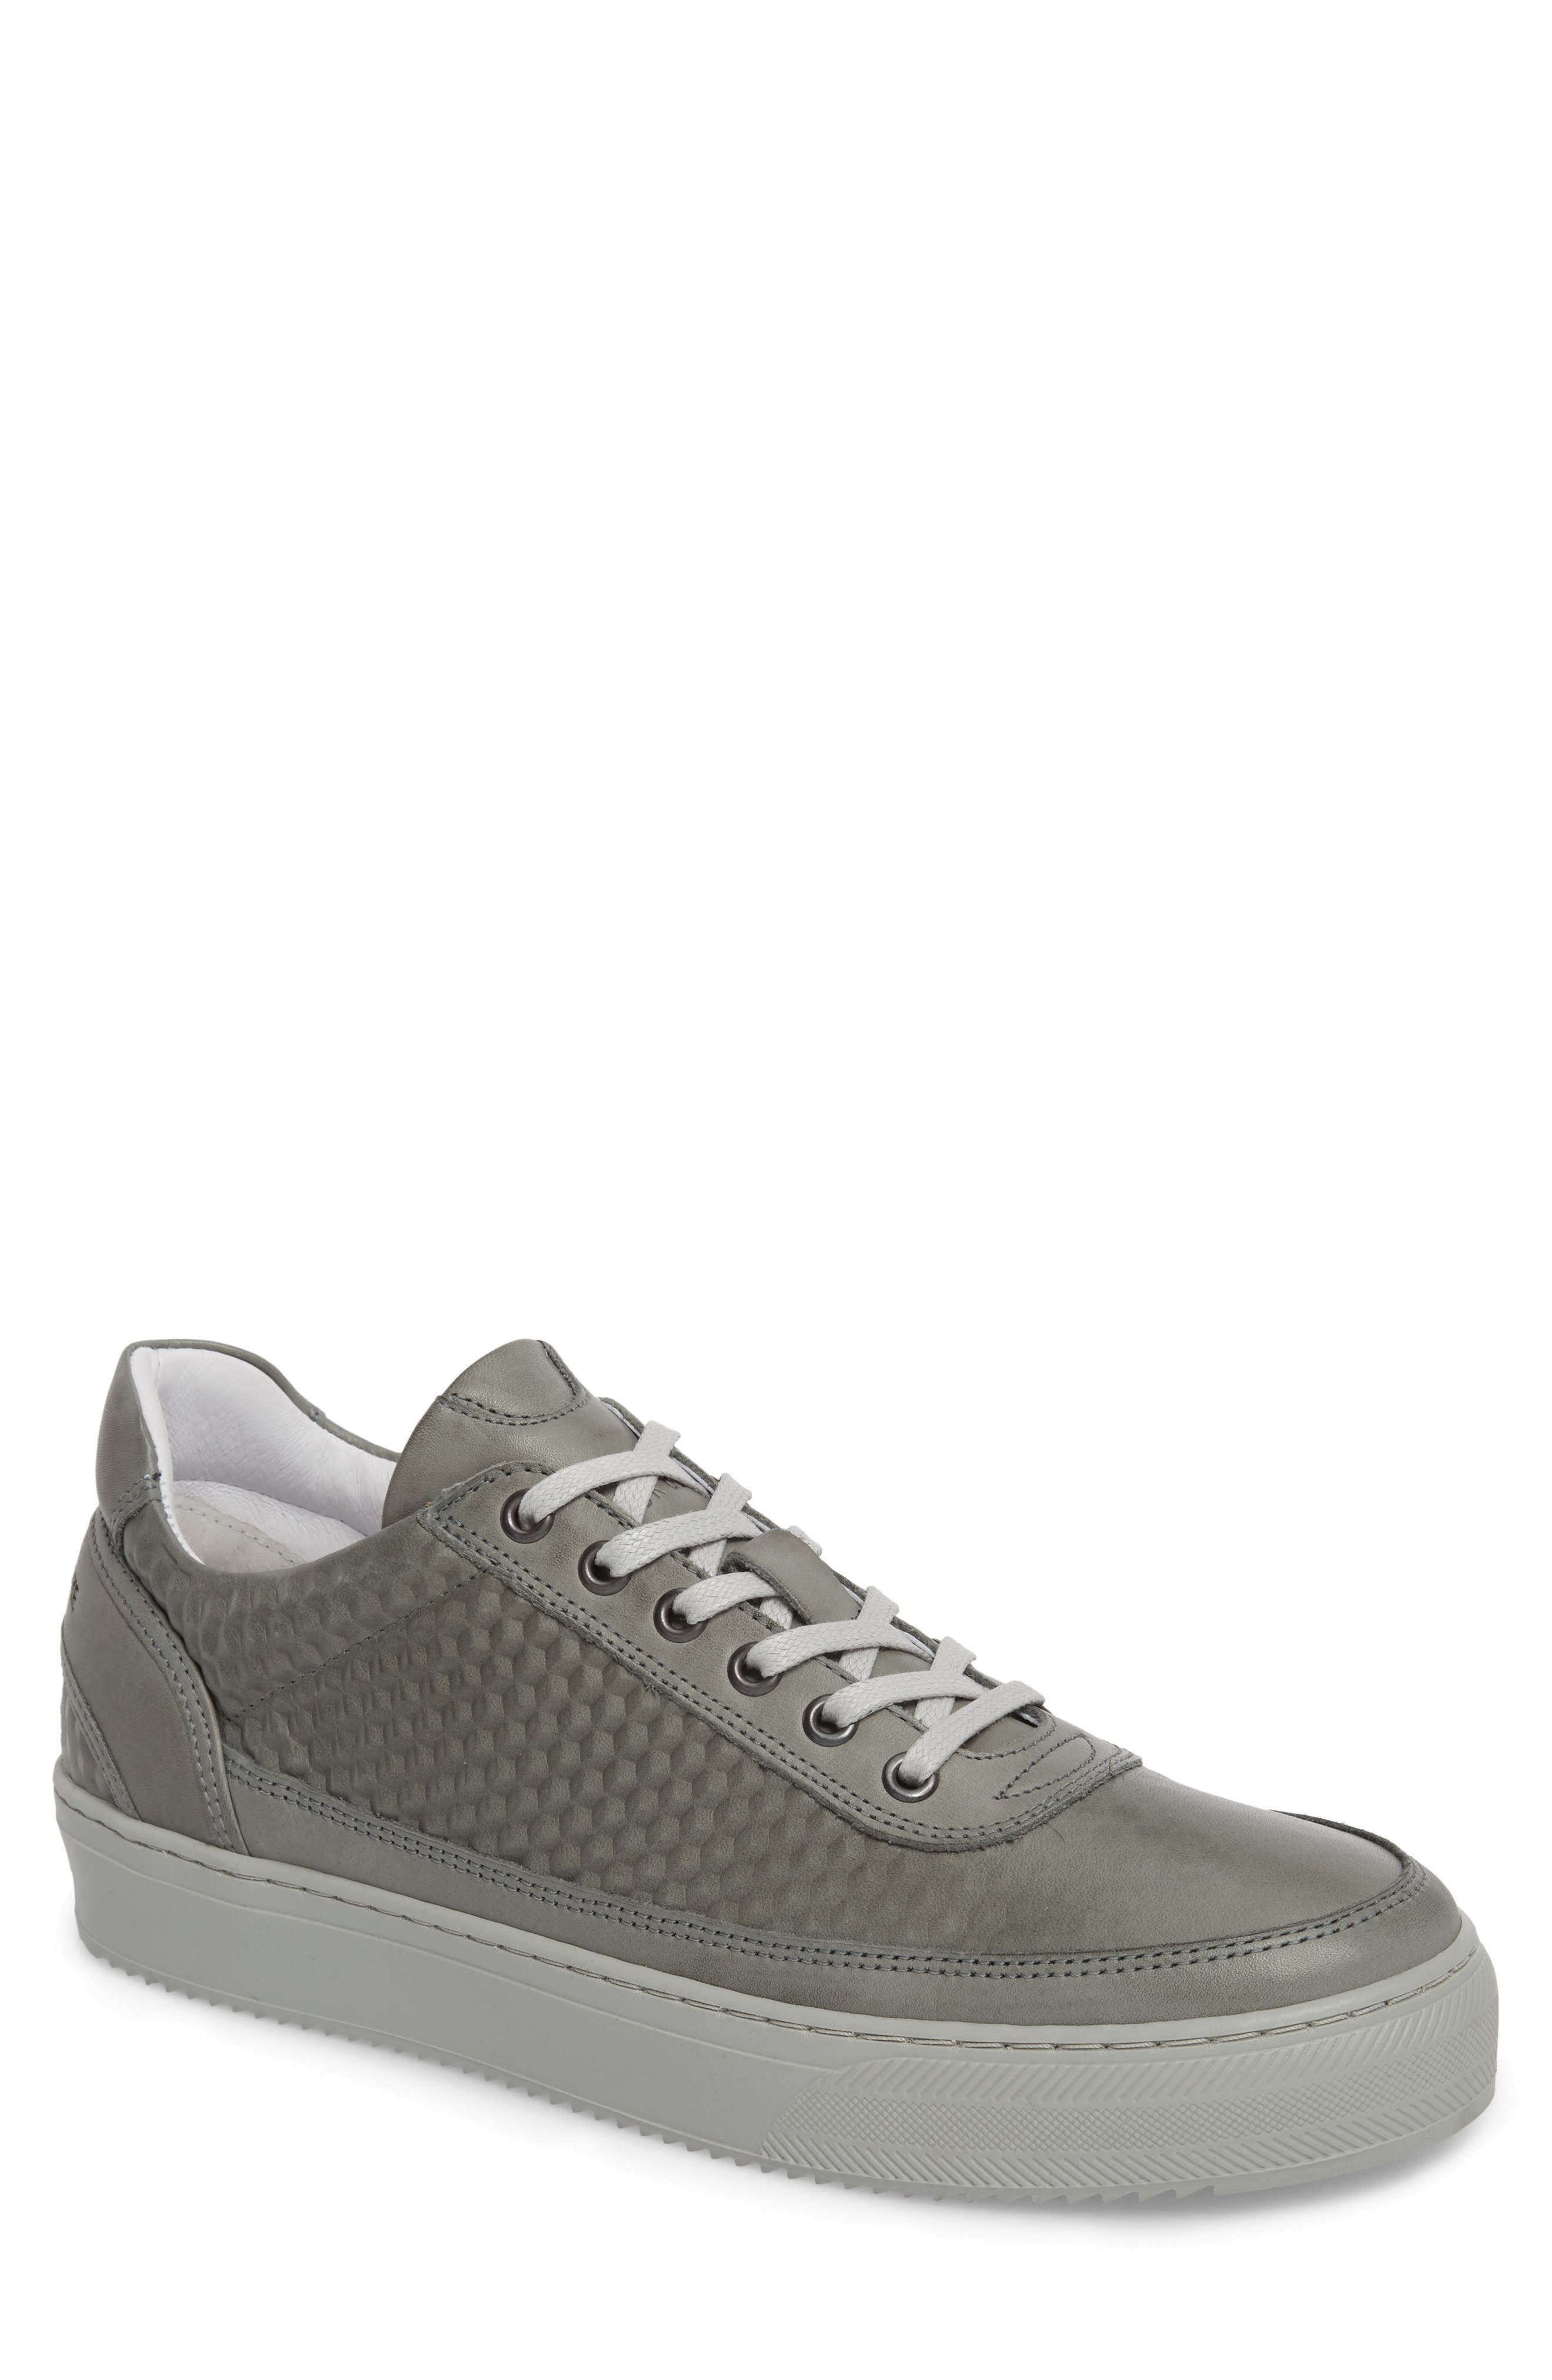 Montreal Textured Low Top Sneaker,                             Main thumbnail 1, color,                             GREY LEATHER